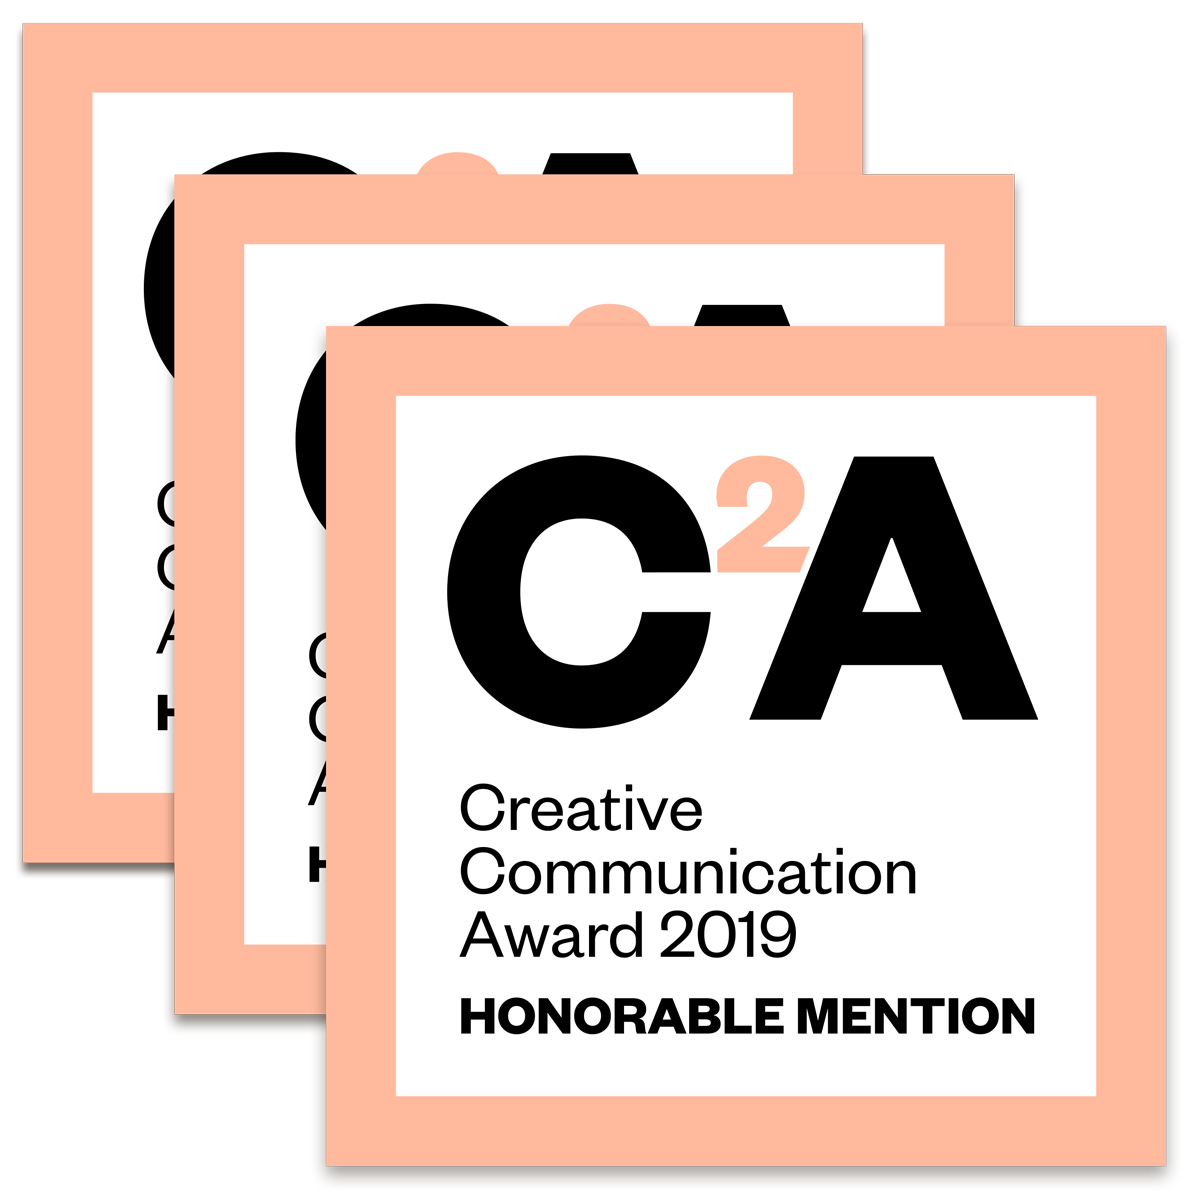 Tenlo C2A Creative Communications Award 2019